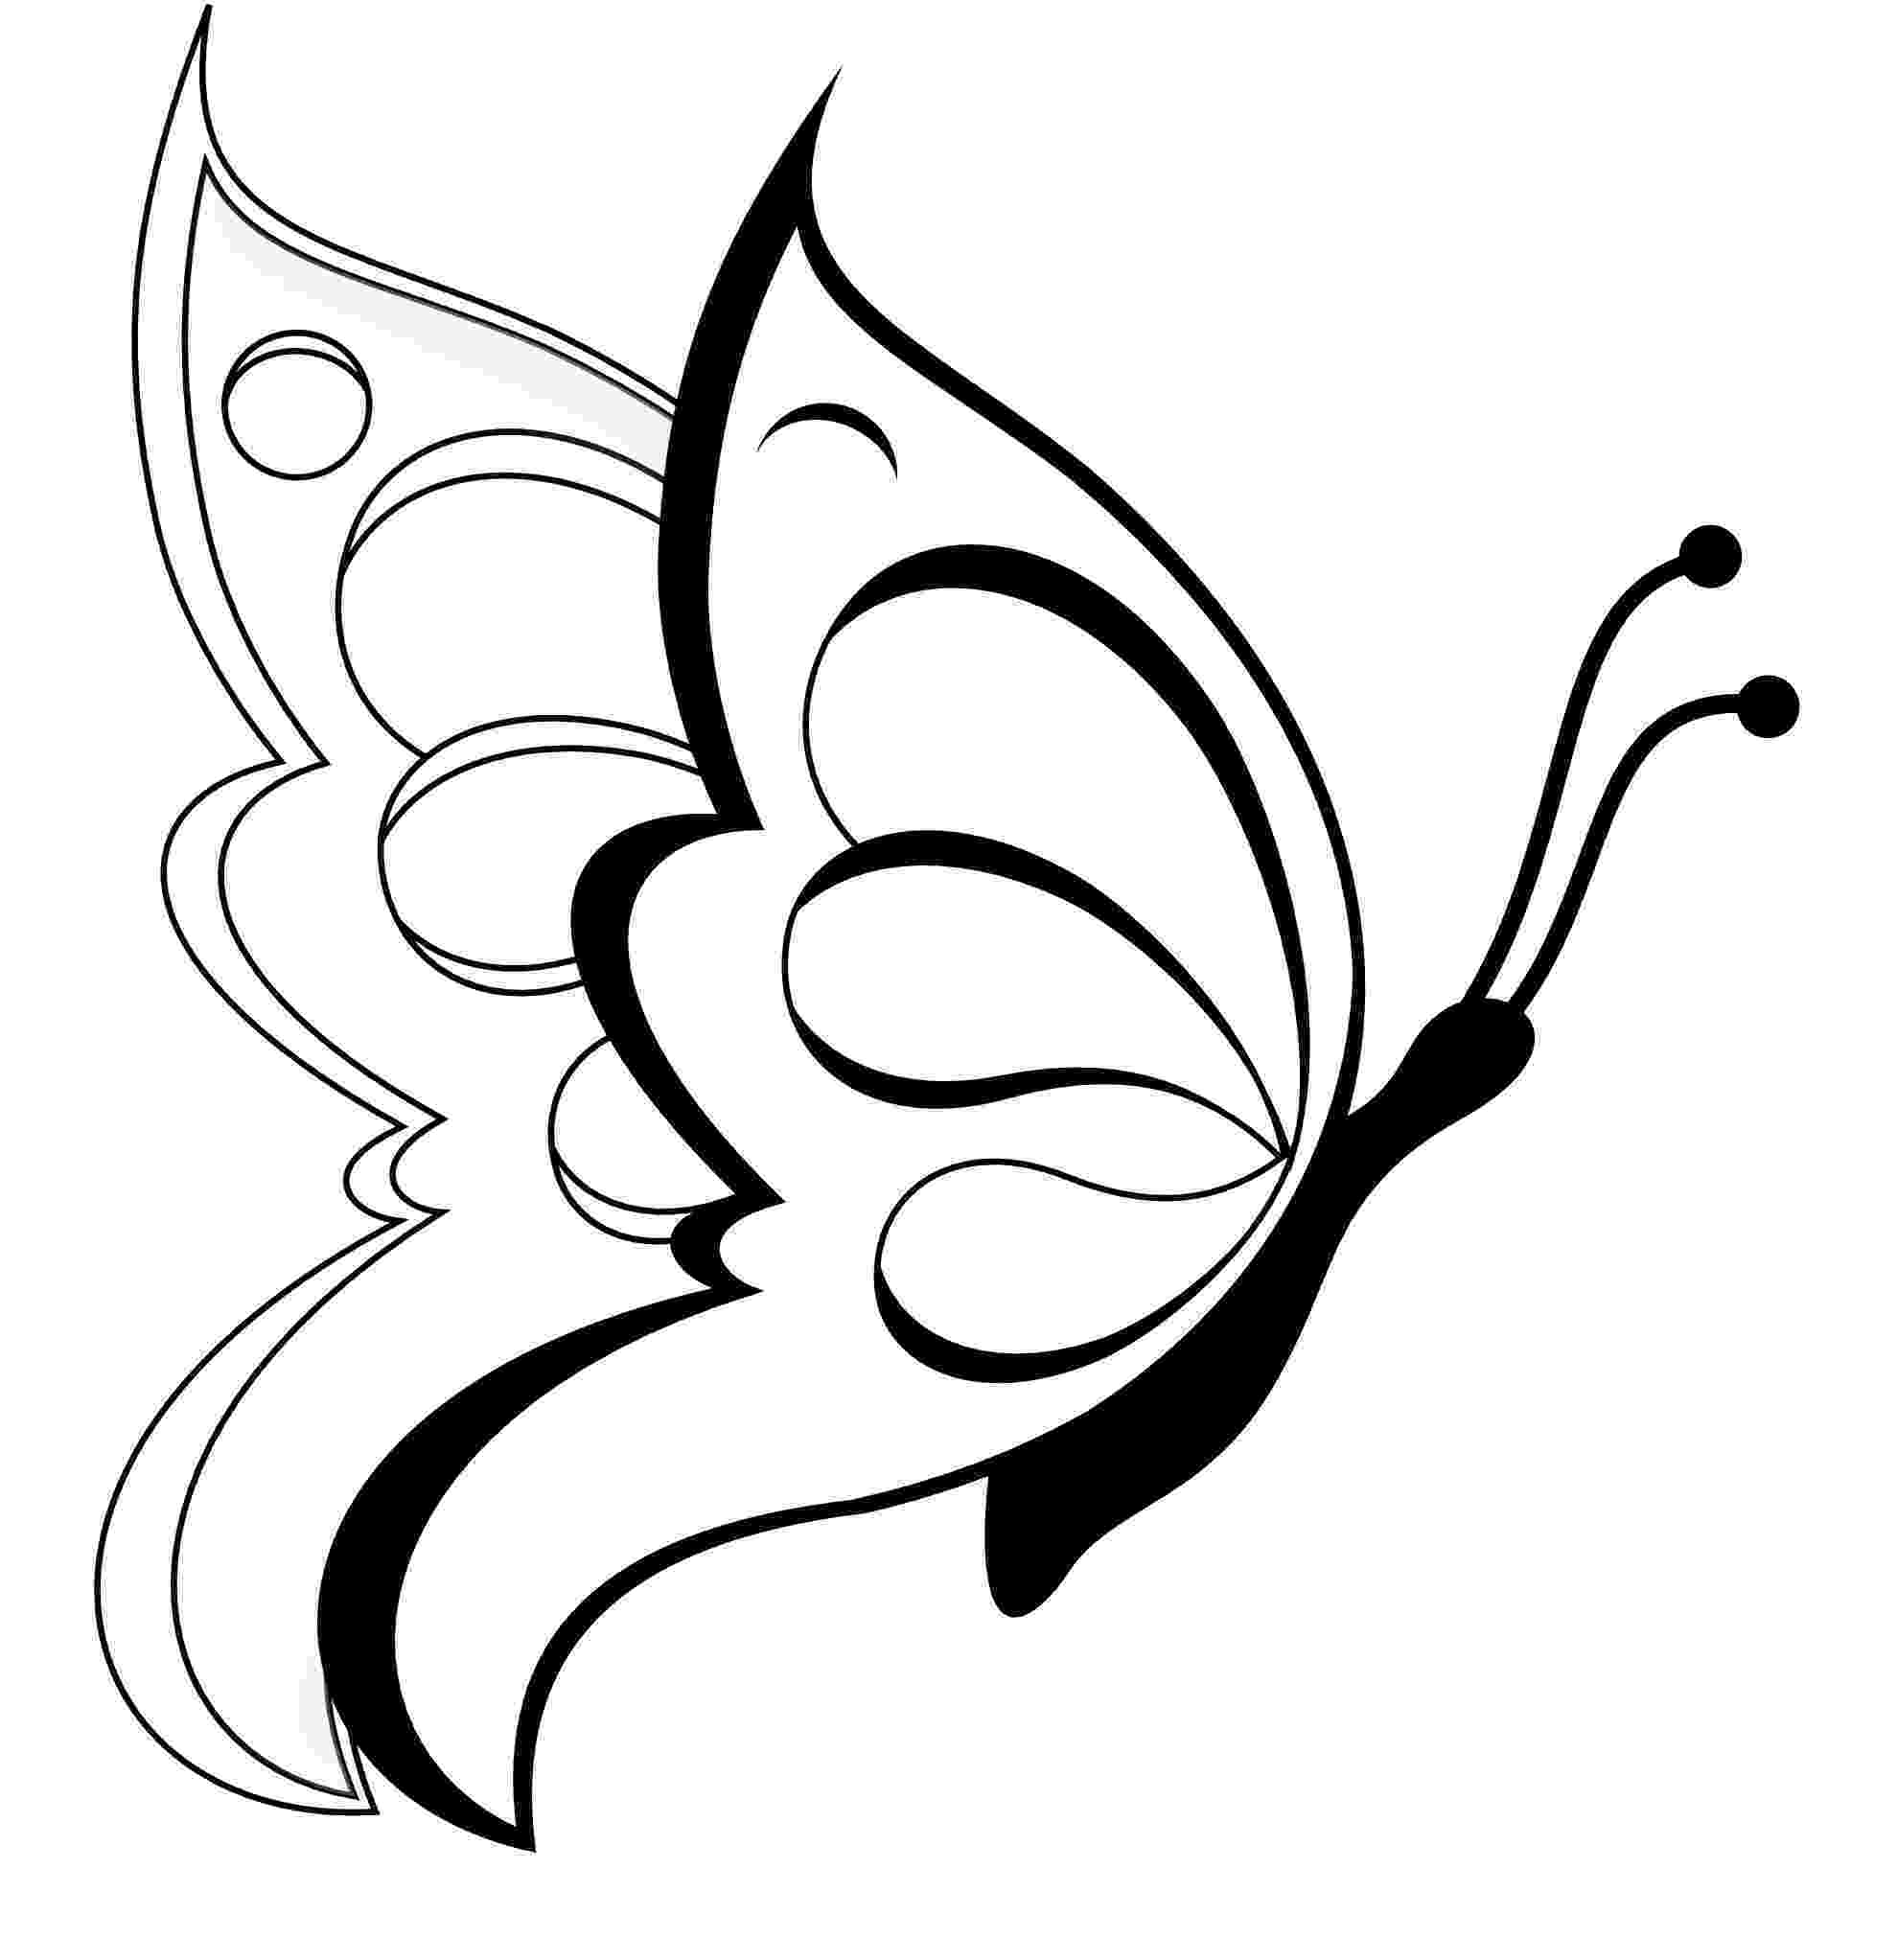 butterfly pictures to color and print free printable butterfly coloring pages for kids color pictures butterfly and to print